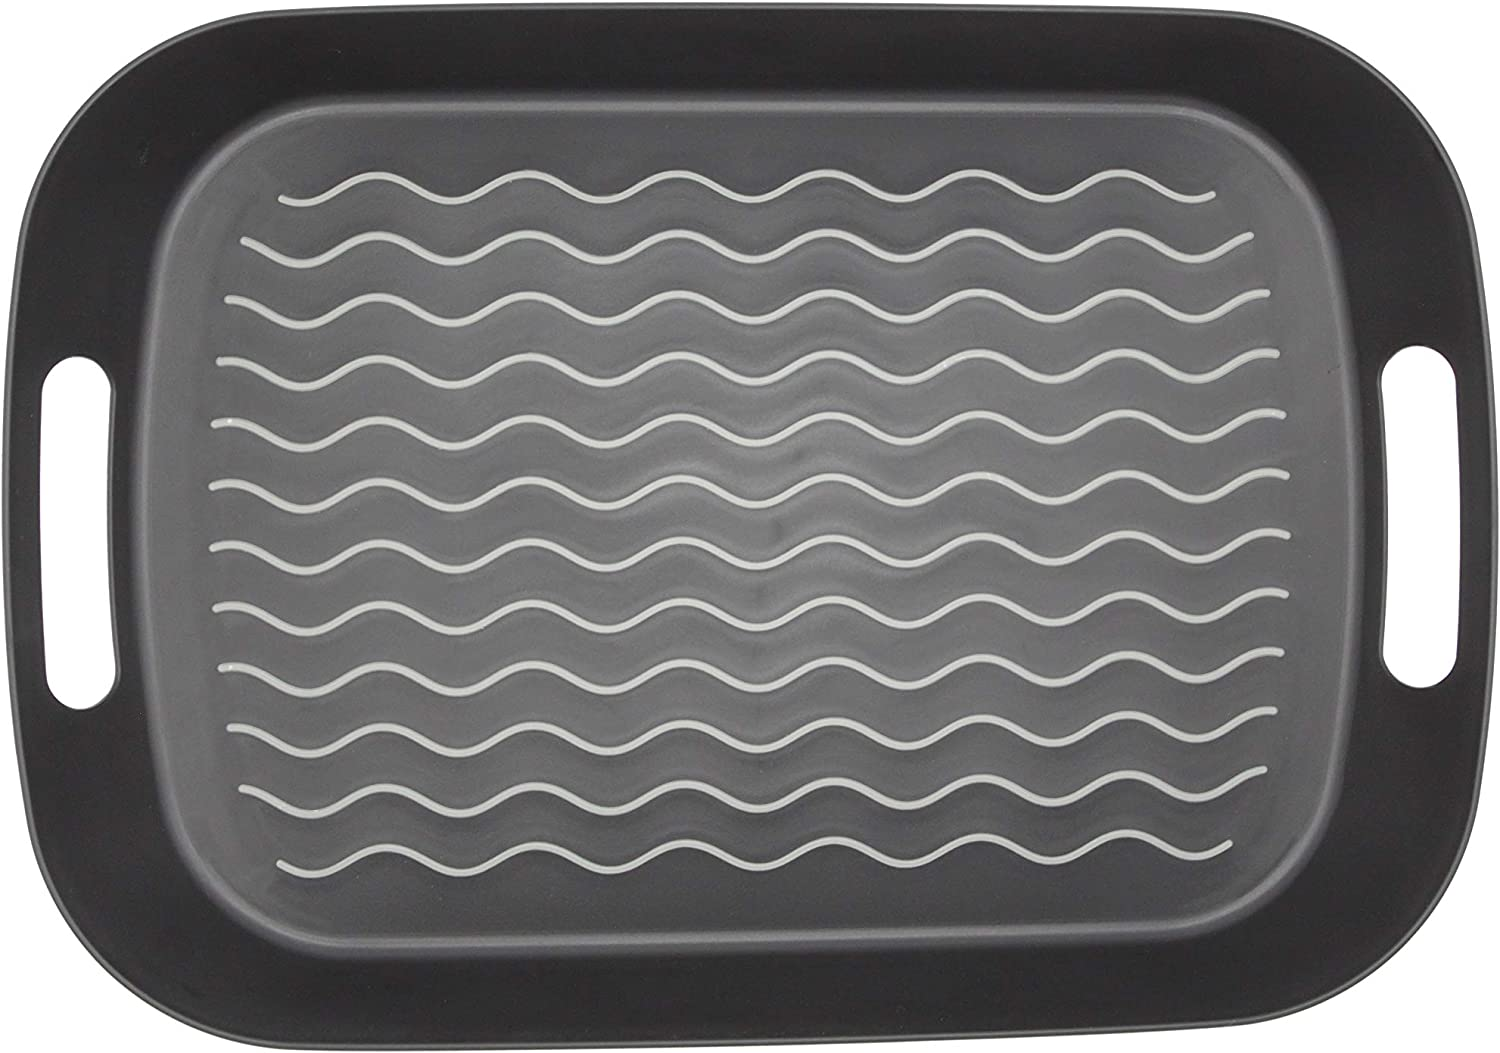 ChopMaster Large Rectangular Anti Slip Serving Tray with Handle (Black)